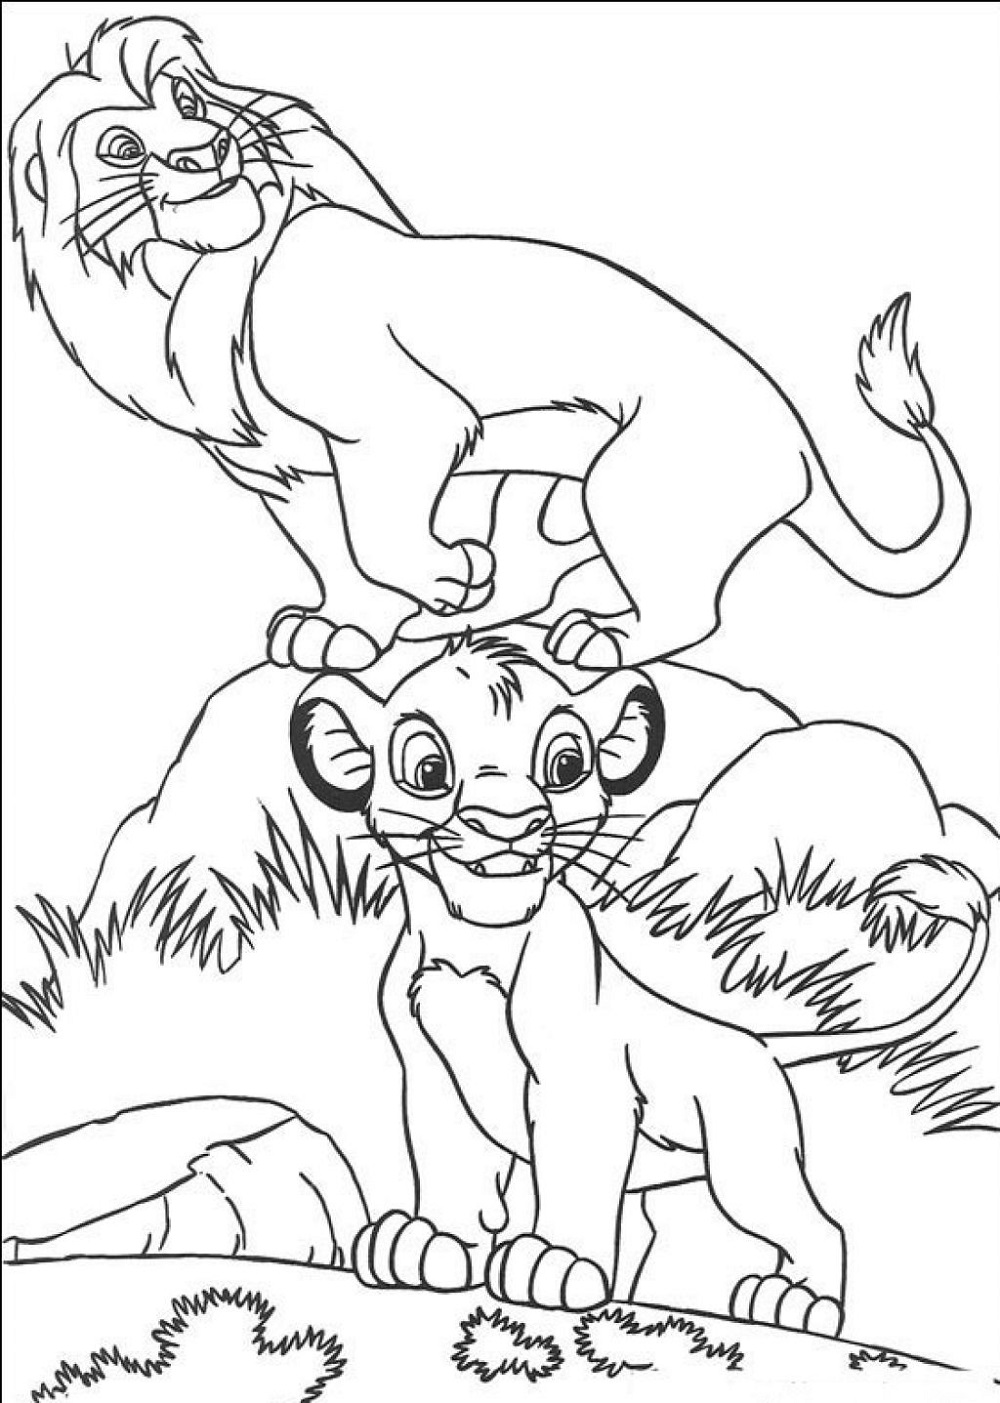 lion coloring pictures 3 printable pages for coloring for lion lovers coloring etsy lion coloring pictures